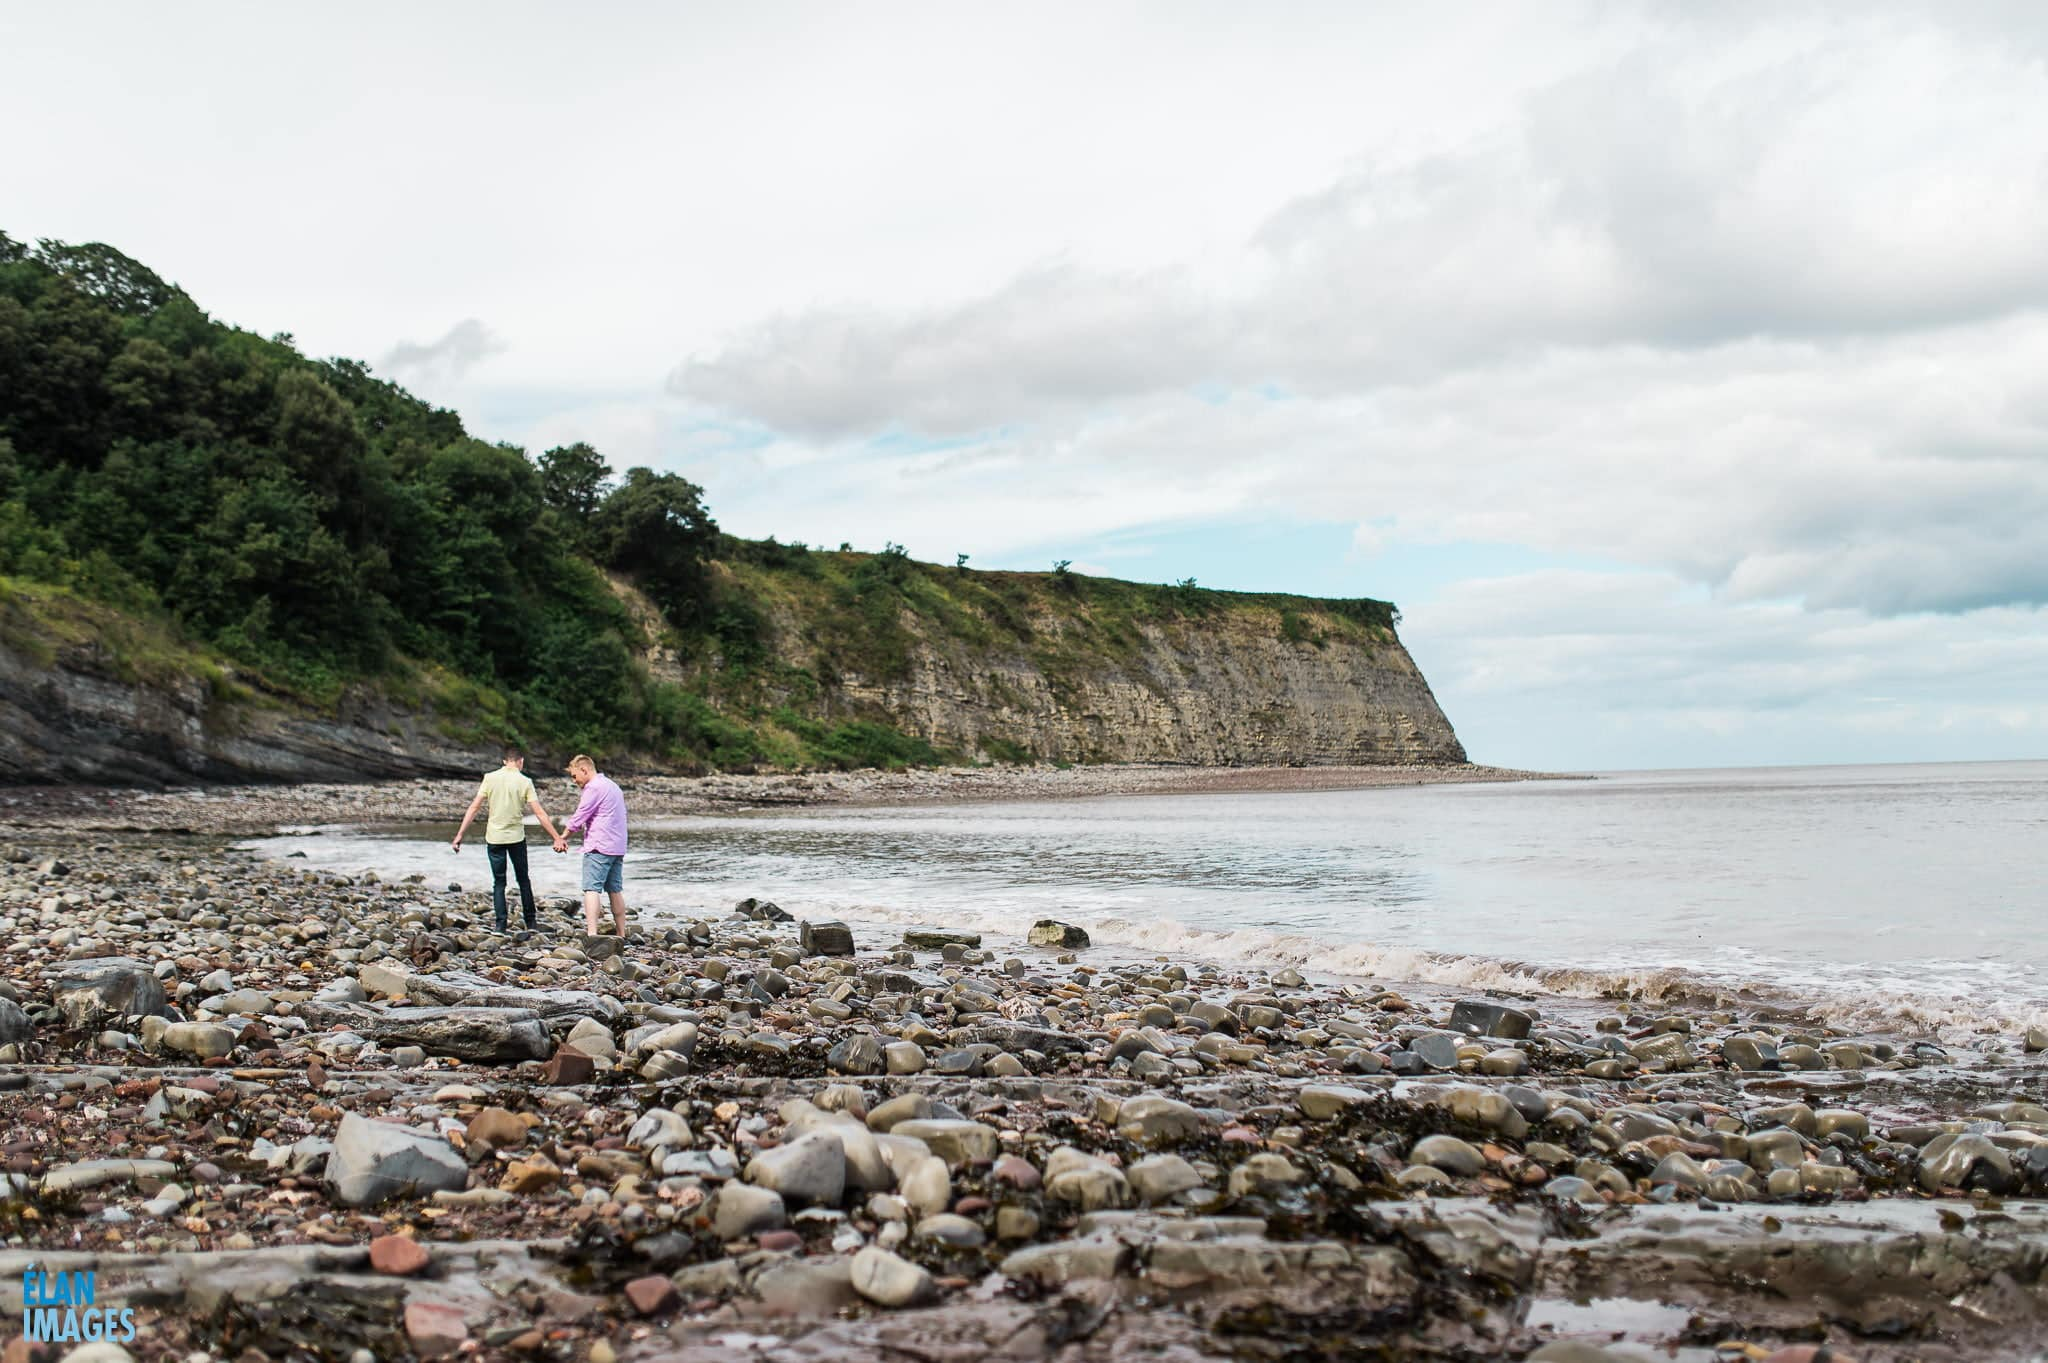 Engagement photo shoot at St Audrie's Bay, Devon 17